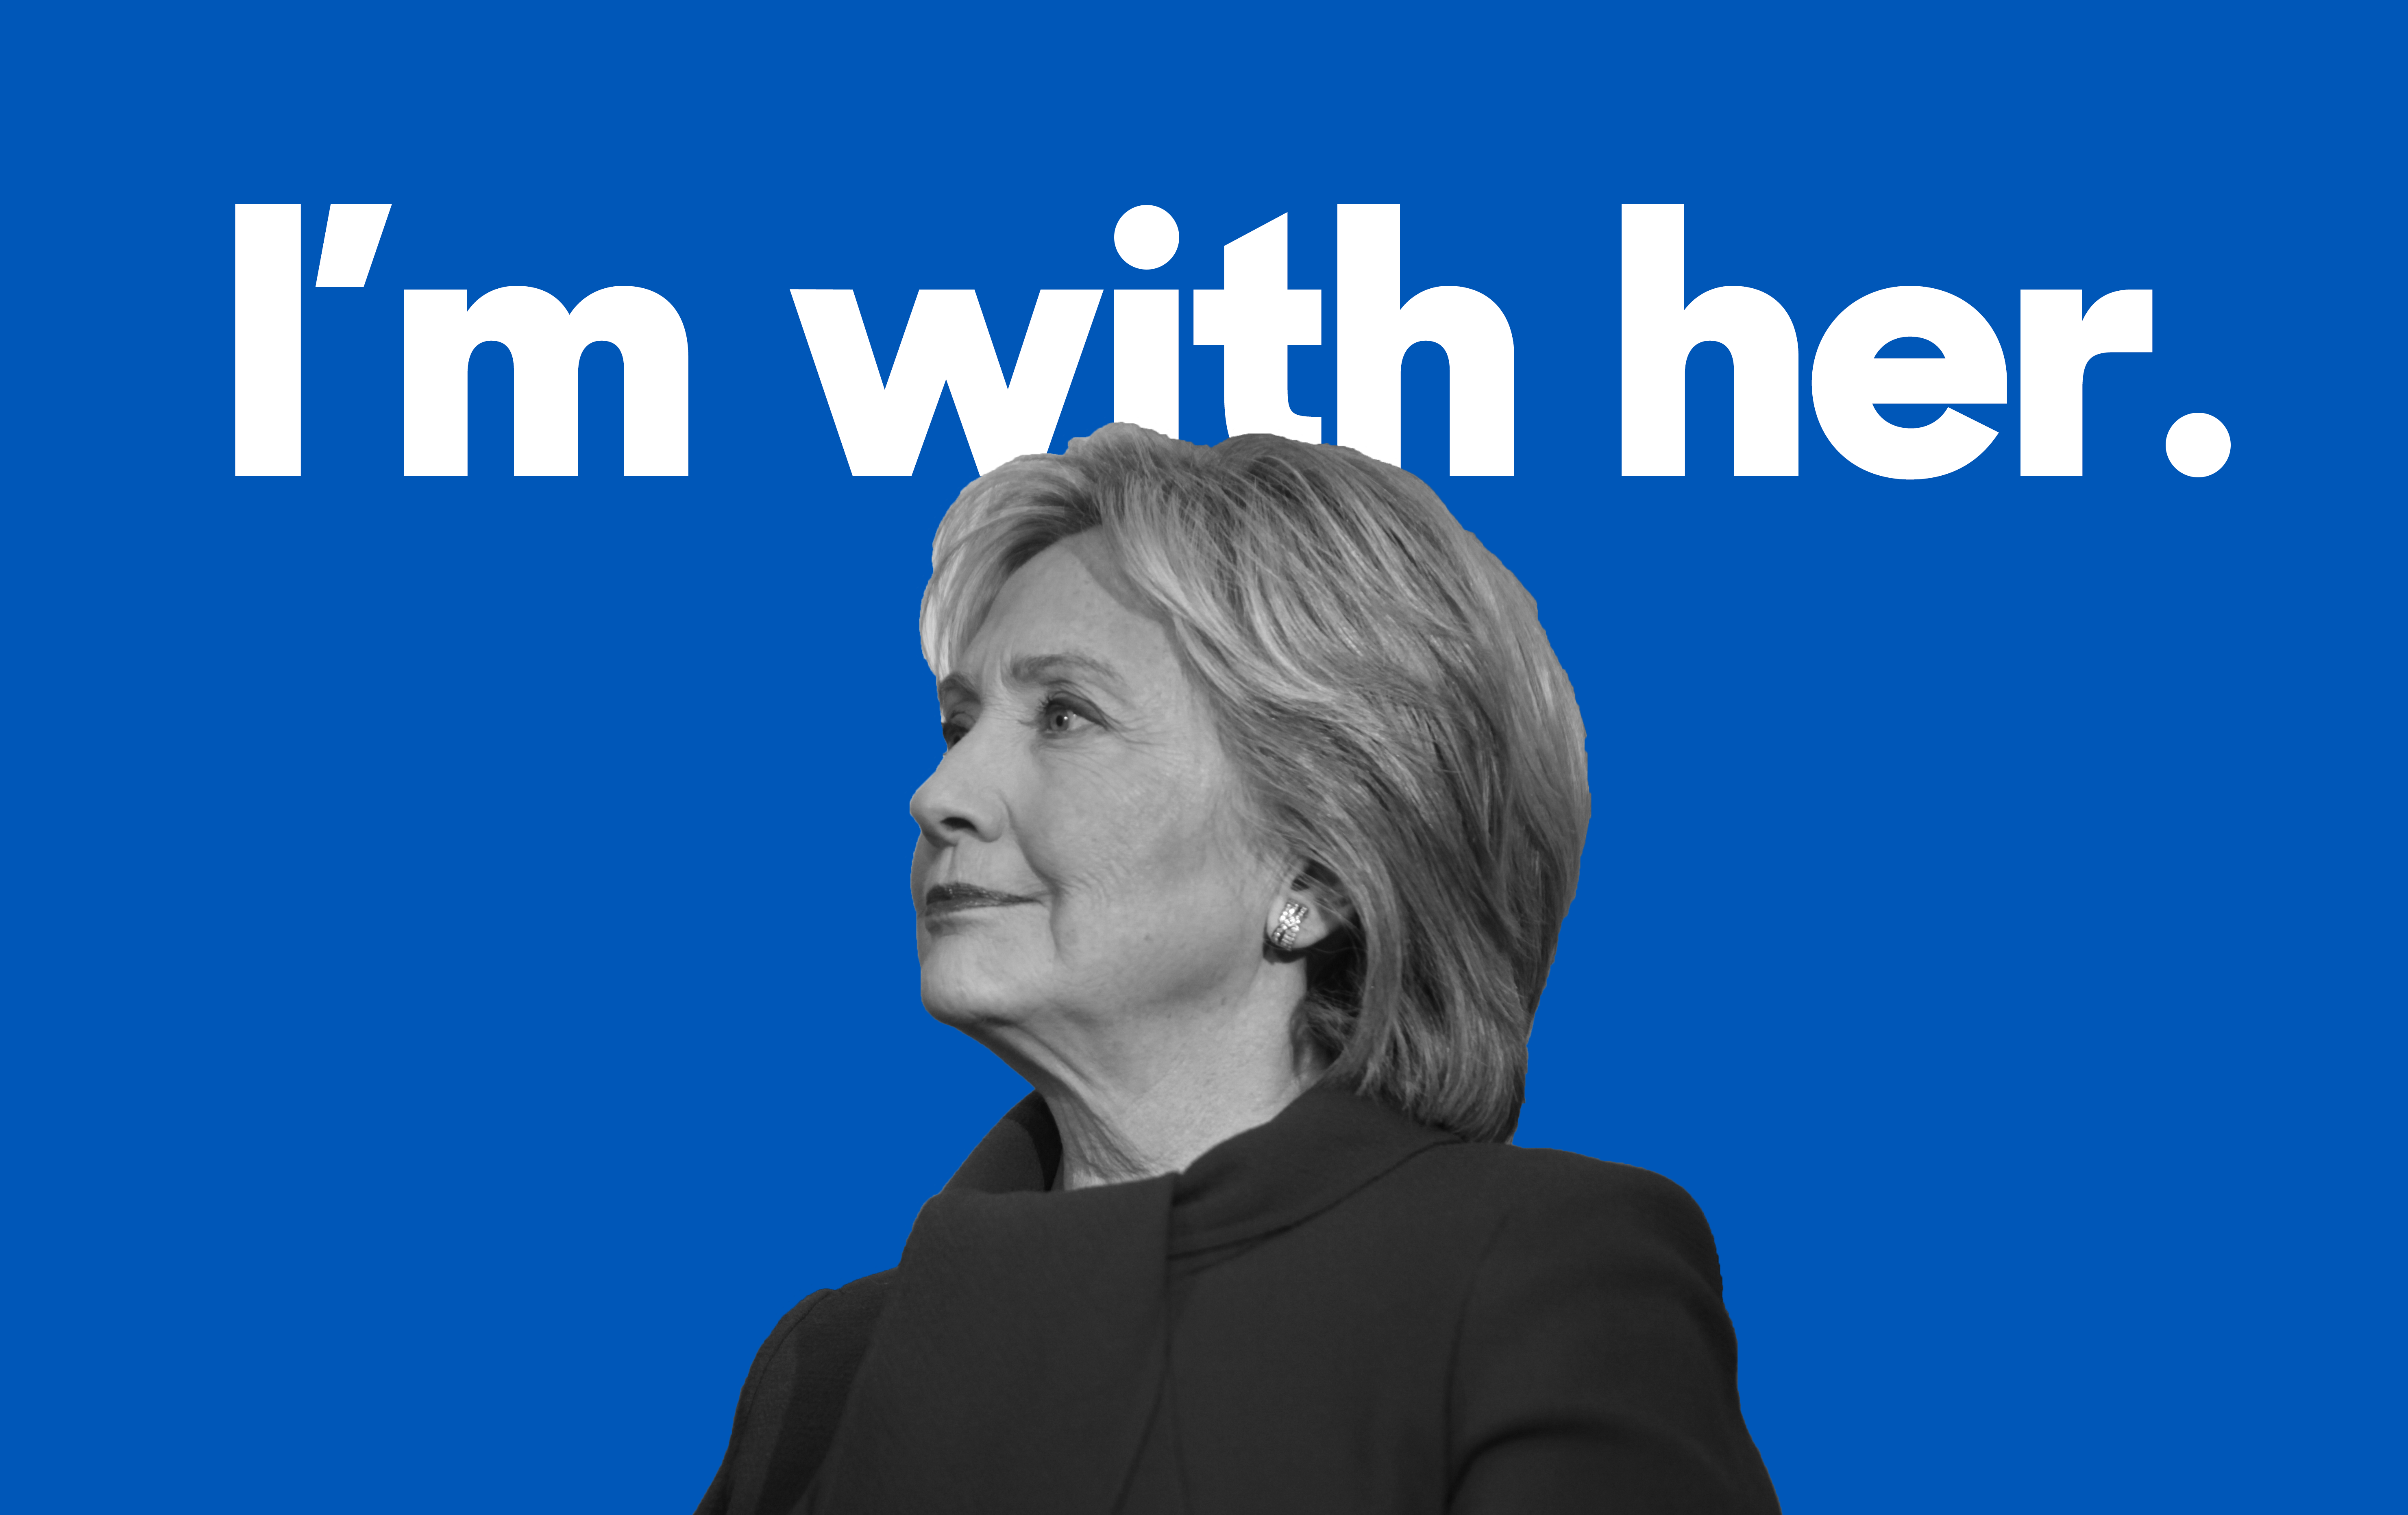 im_with_her_blue.png